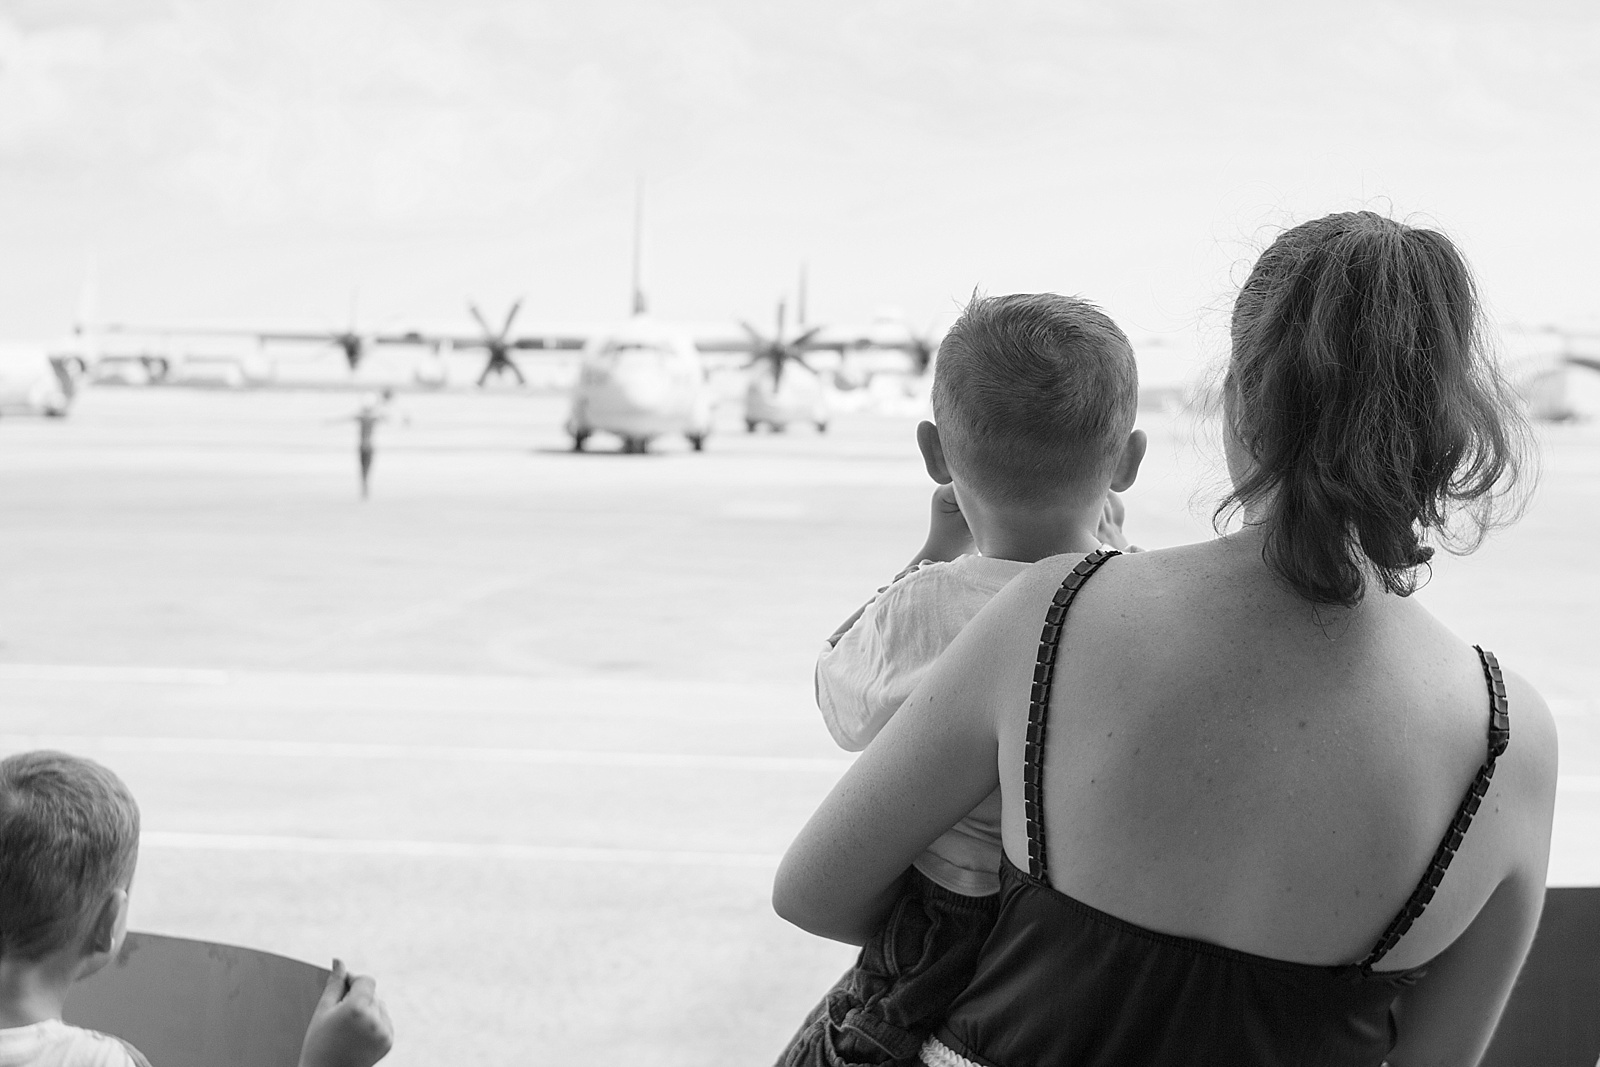 Marine Corps C130 homecoming photography at MCAS Cherry Point from North Carolina portrait photographer Lauren Nygard